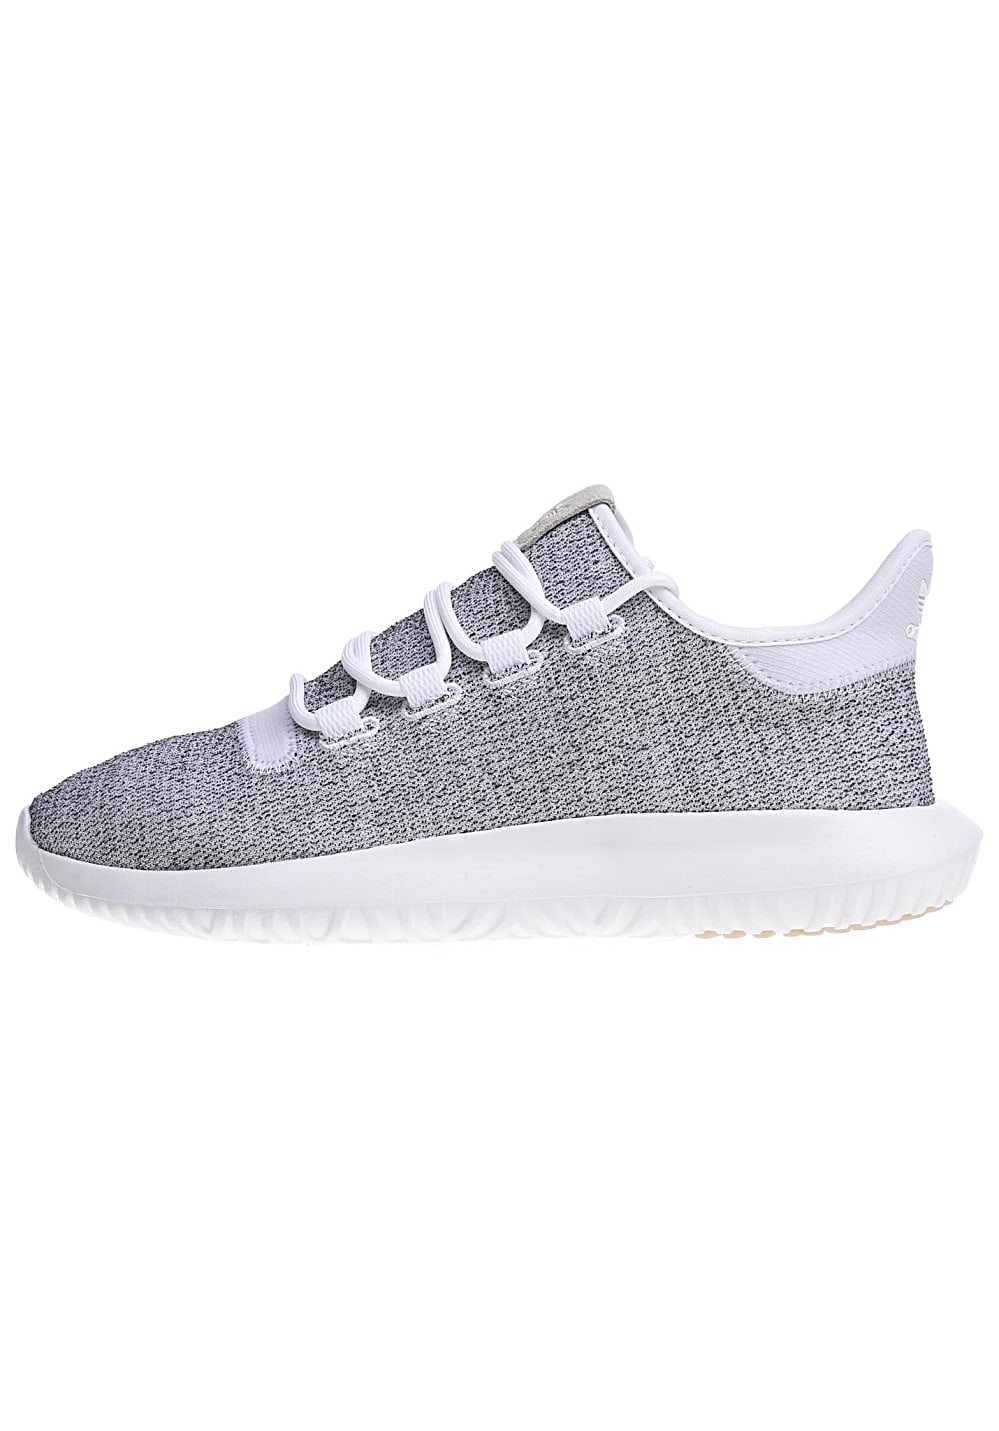 best sneakers cb75c b1fe1 ADIDAS ORIGINALS Tubular Shadow - Sneakers for Men - Grey